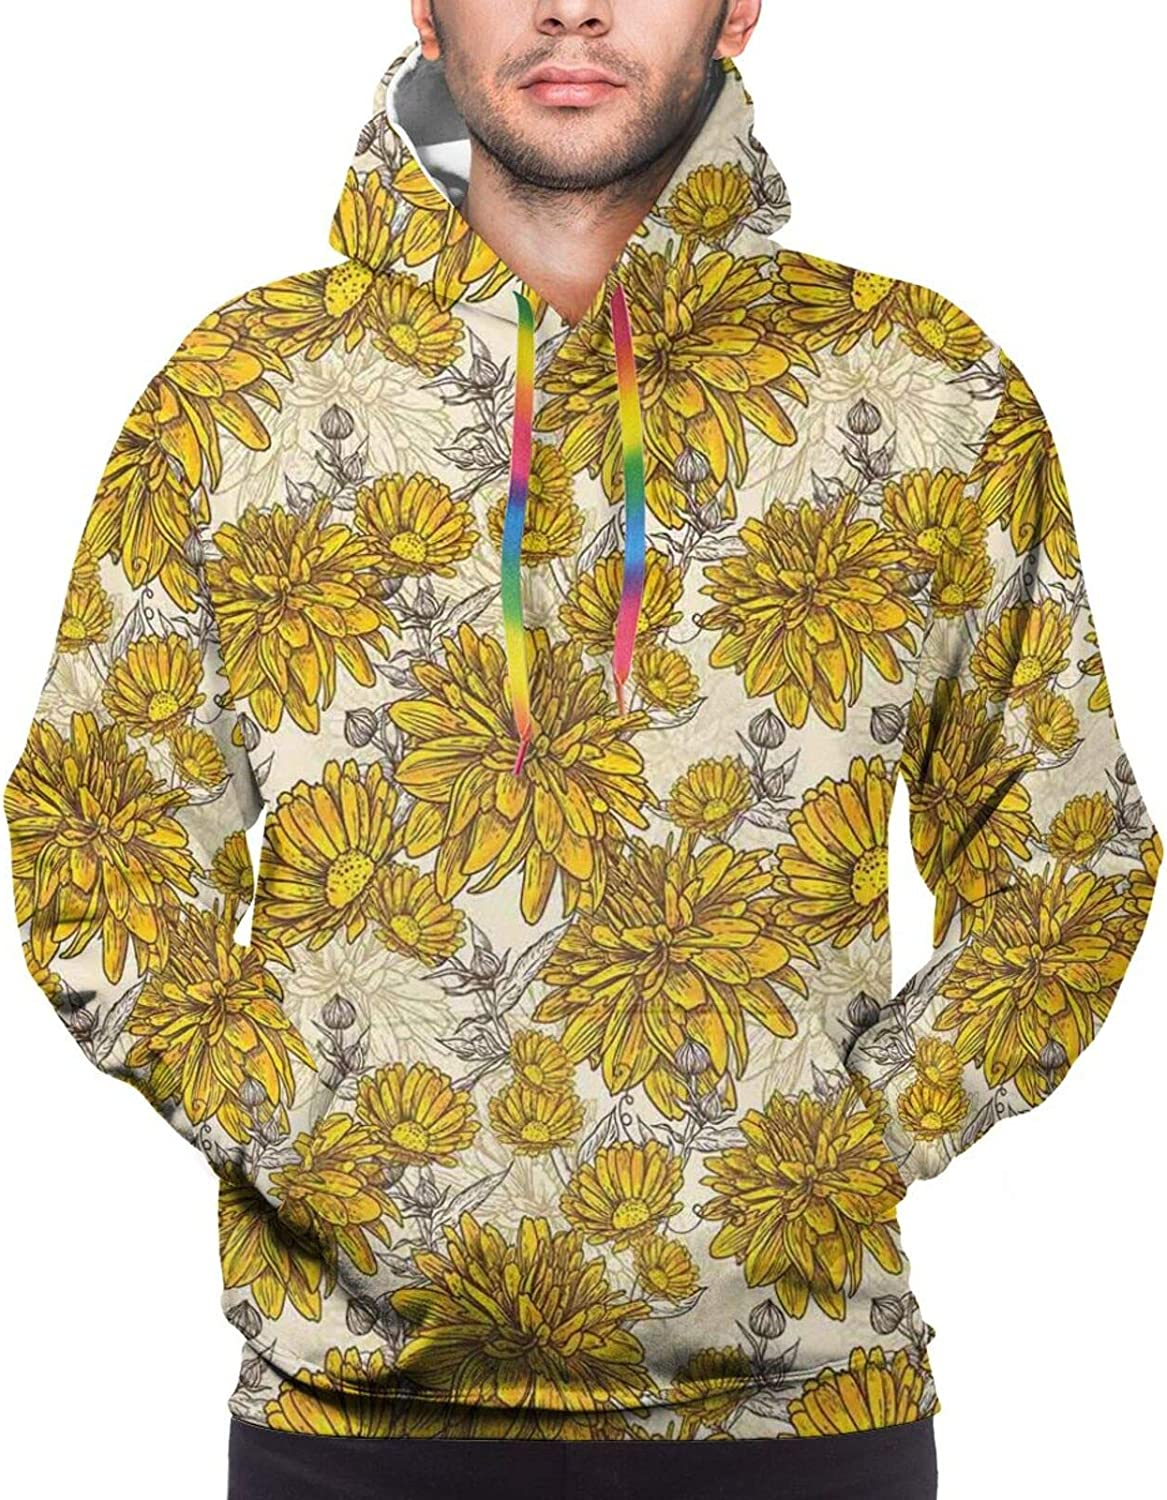 Men's Hoodies Sweatshirts,Lily Blooms Nature Herbs Doodle Style Flower and Foliage Arrangement